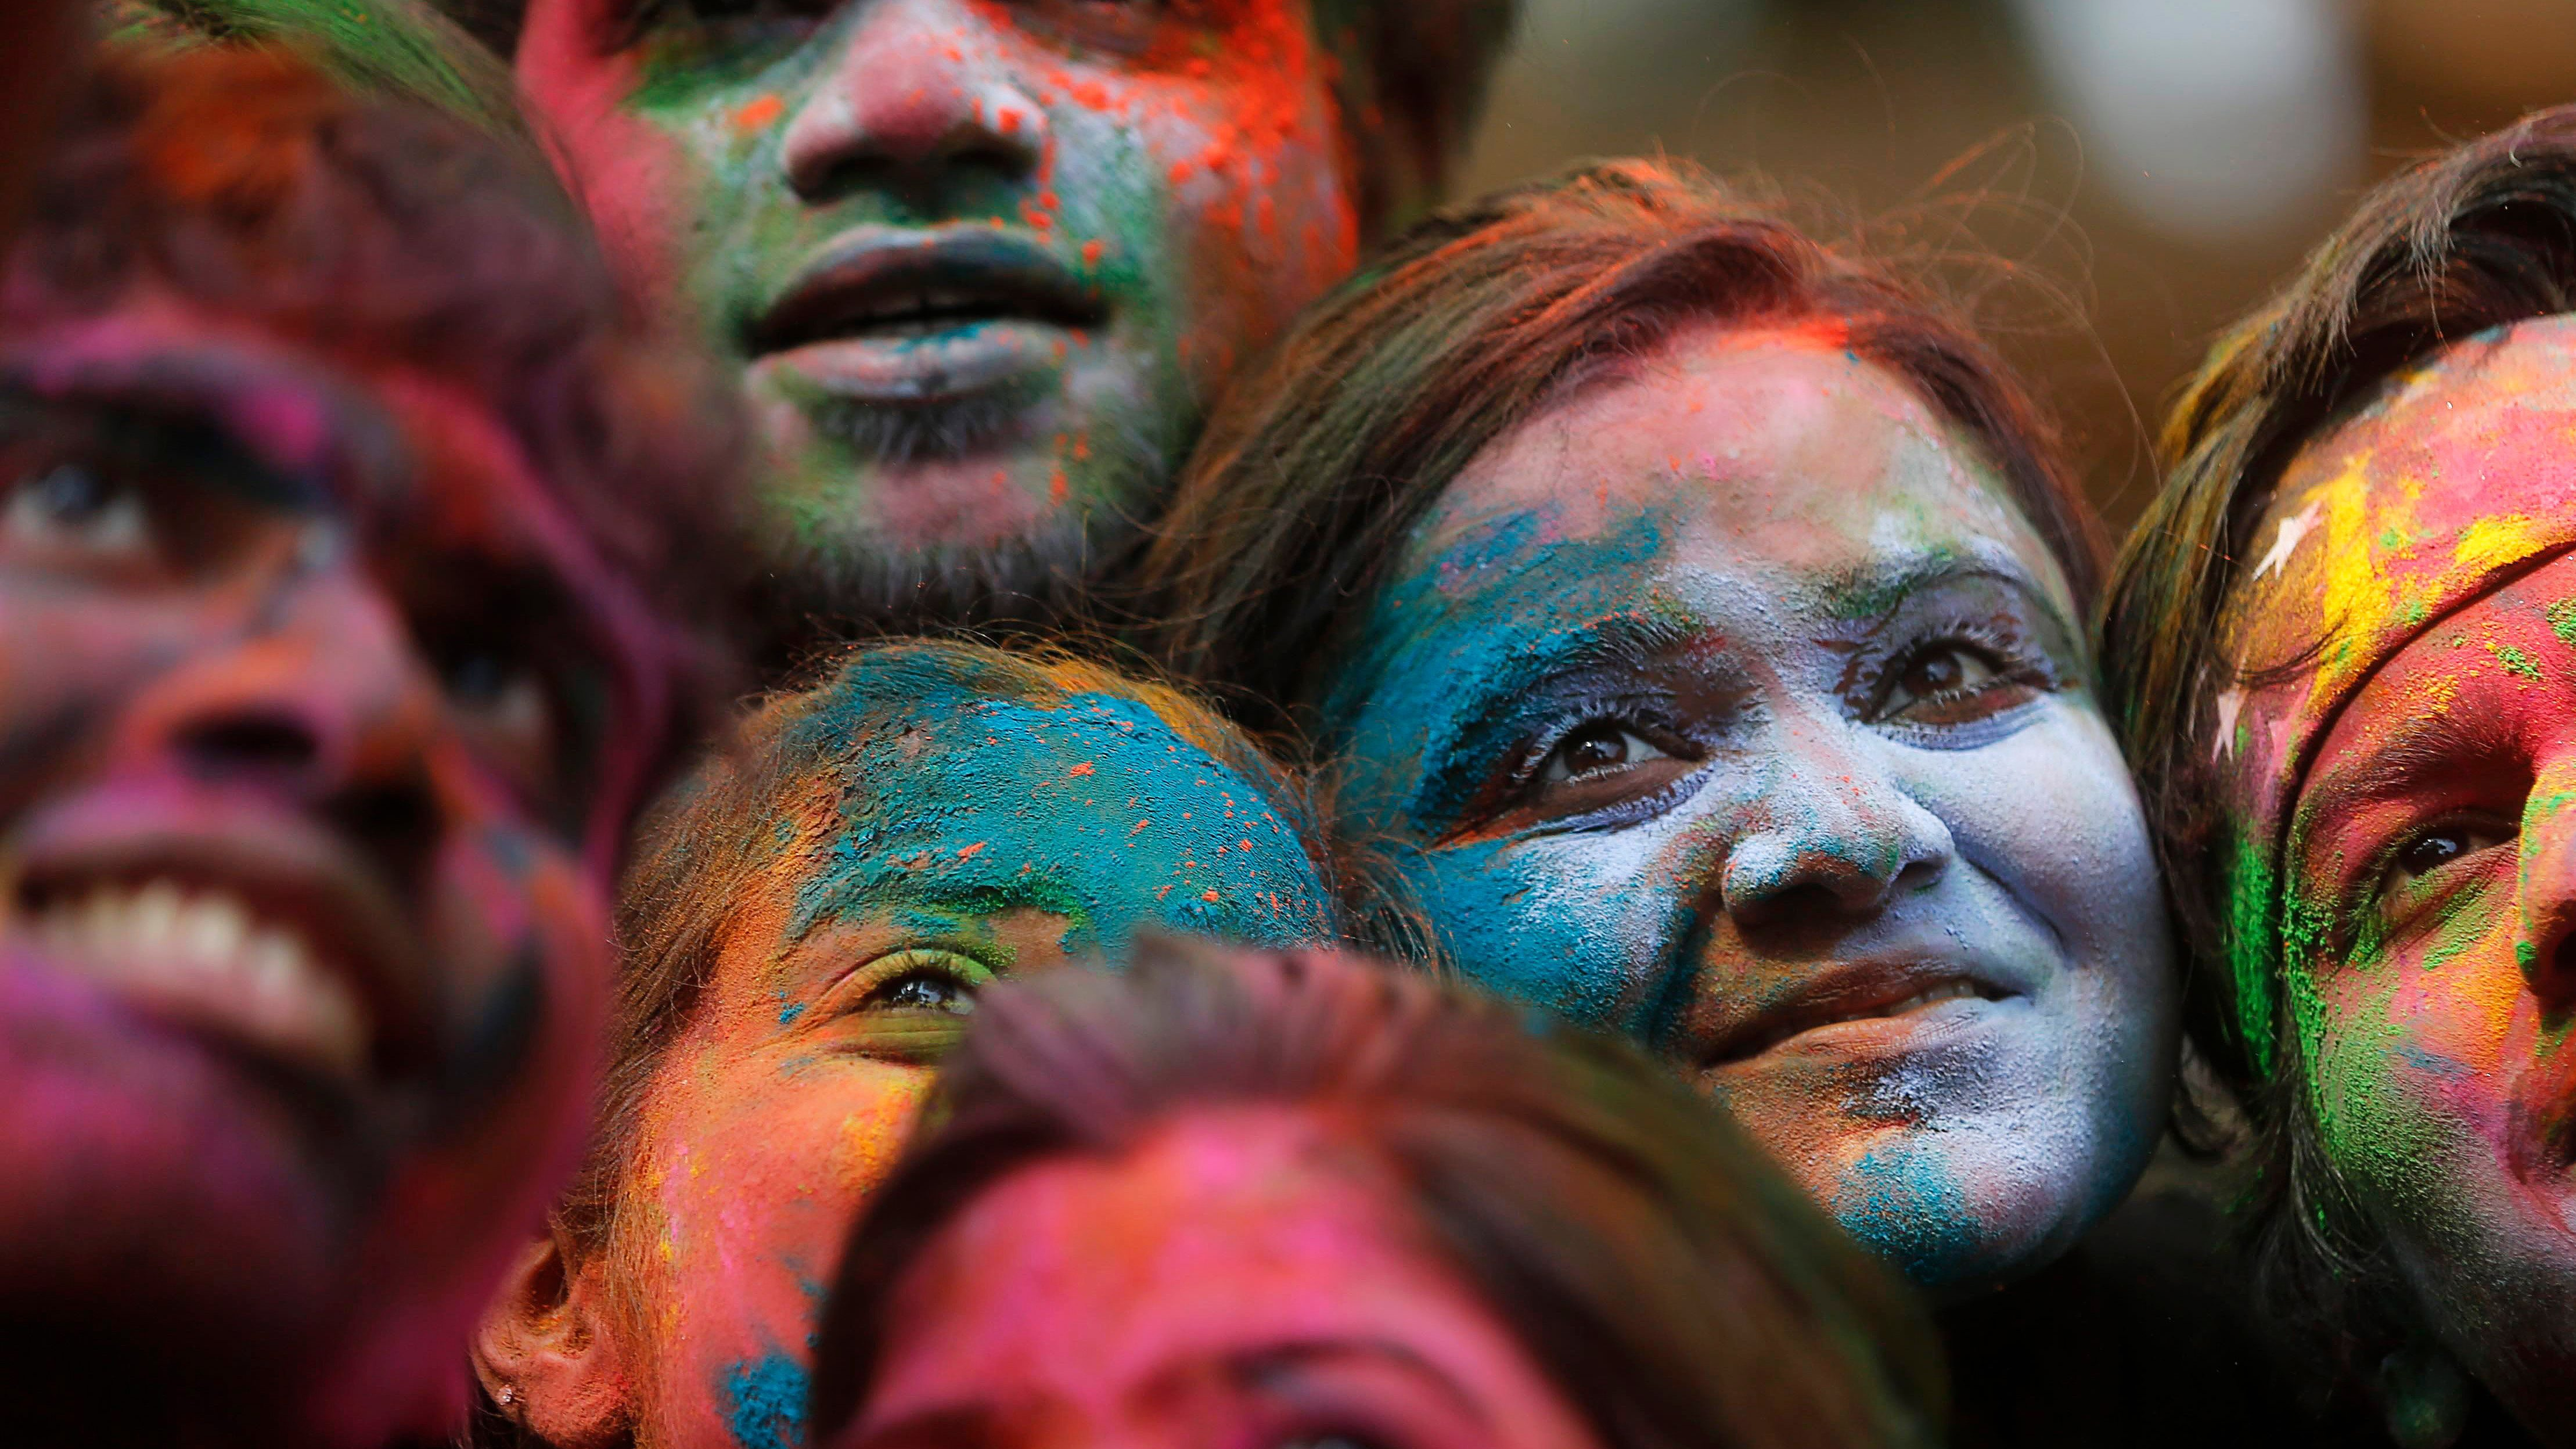 People pose for a selfie while celebrating Holi in Mumbai, India March 24, 2016.